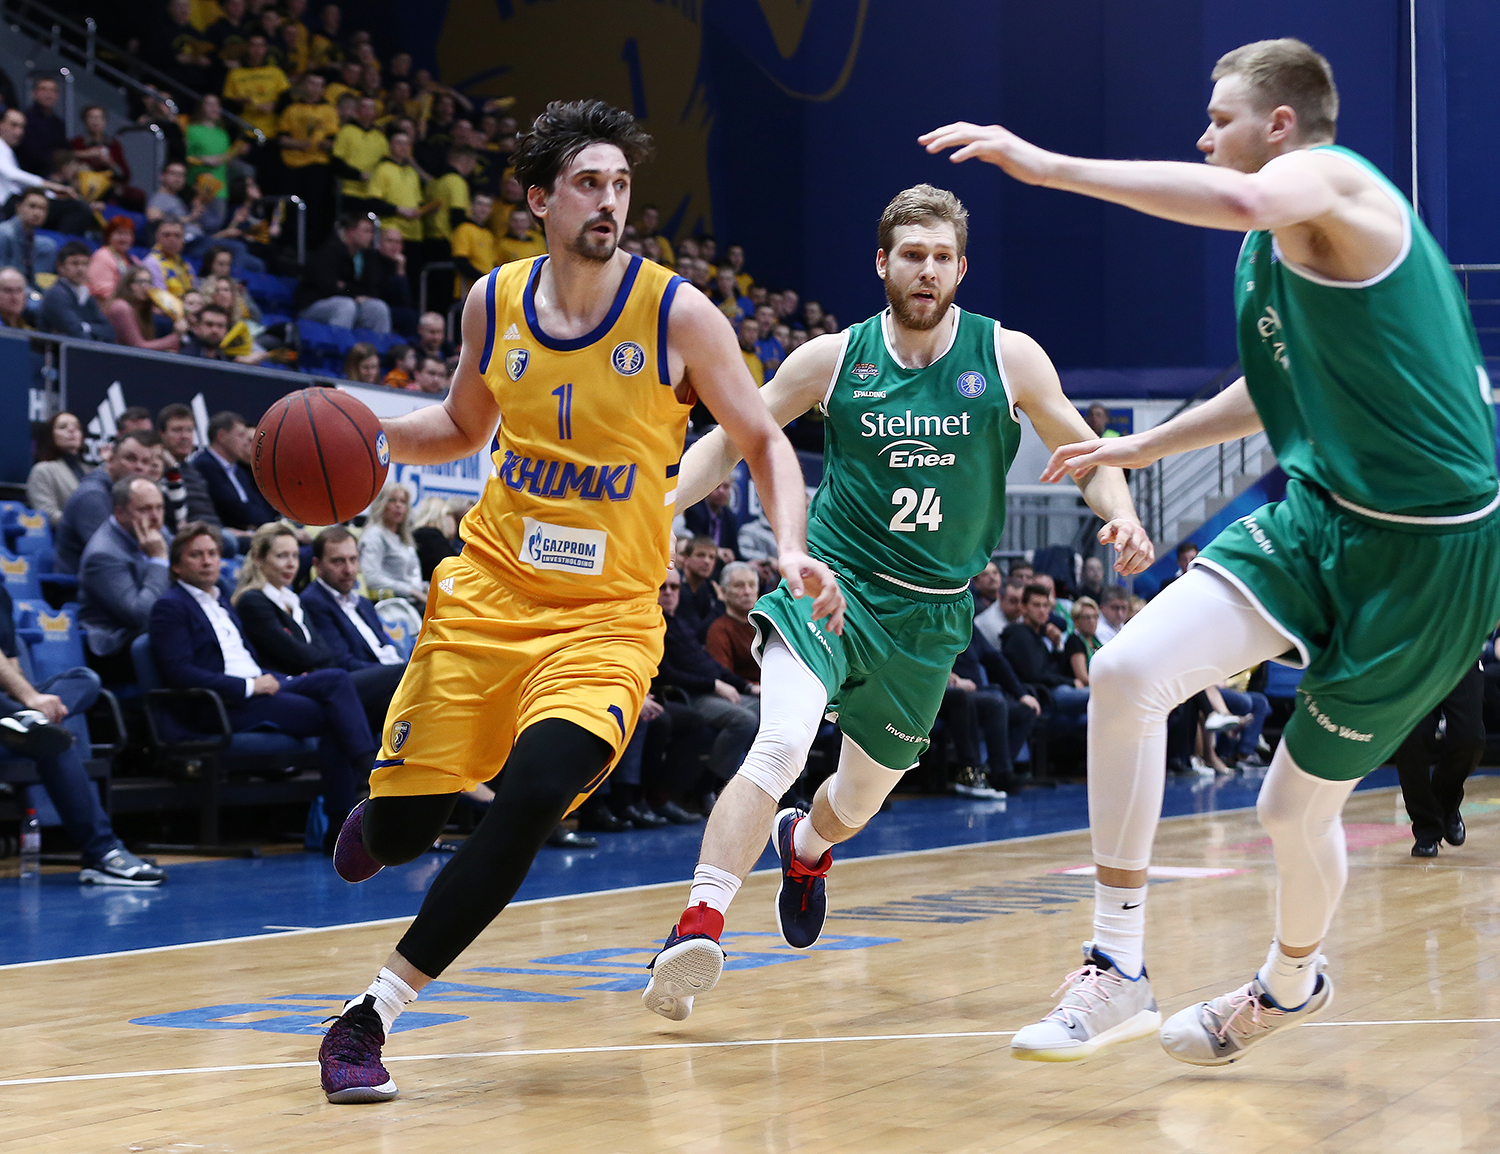 Khimki Stays Hot, Blows Out Zielona Gora